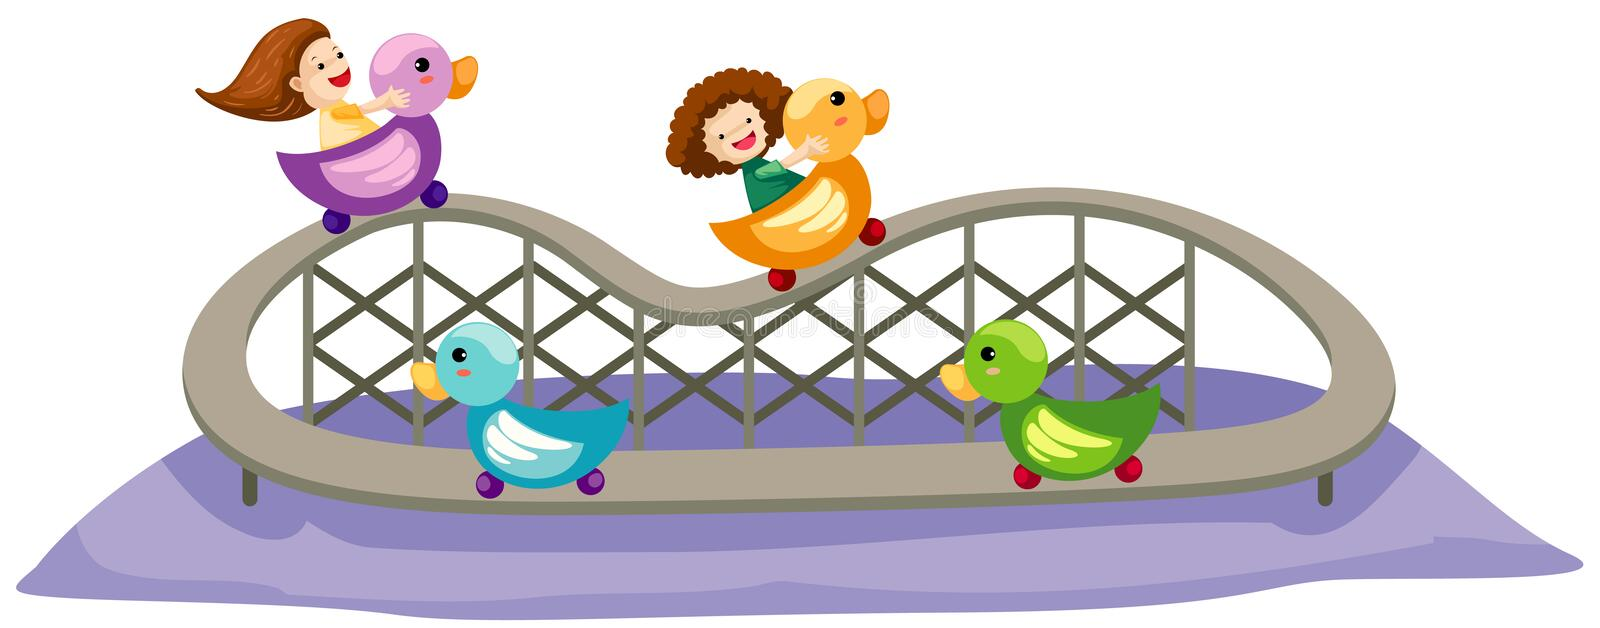 Download Rollercoaster Ride stock vector. Illustration of detail - 16550268